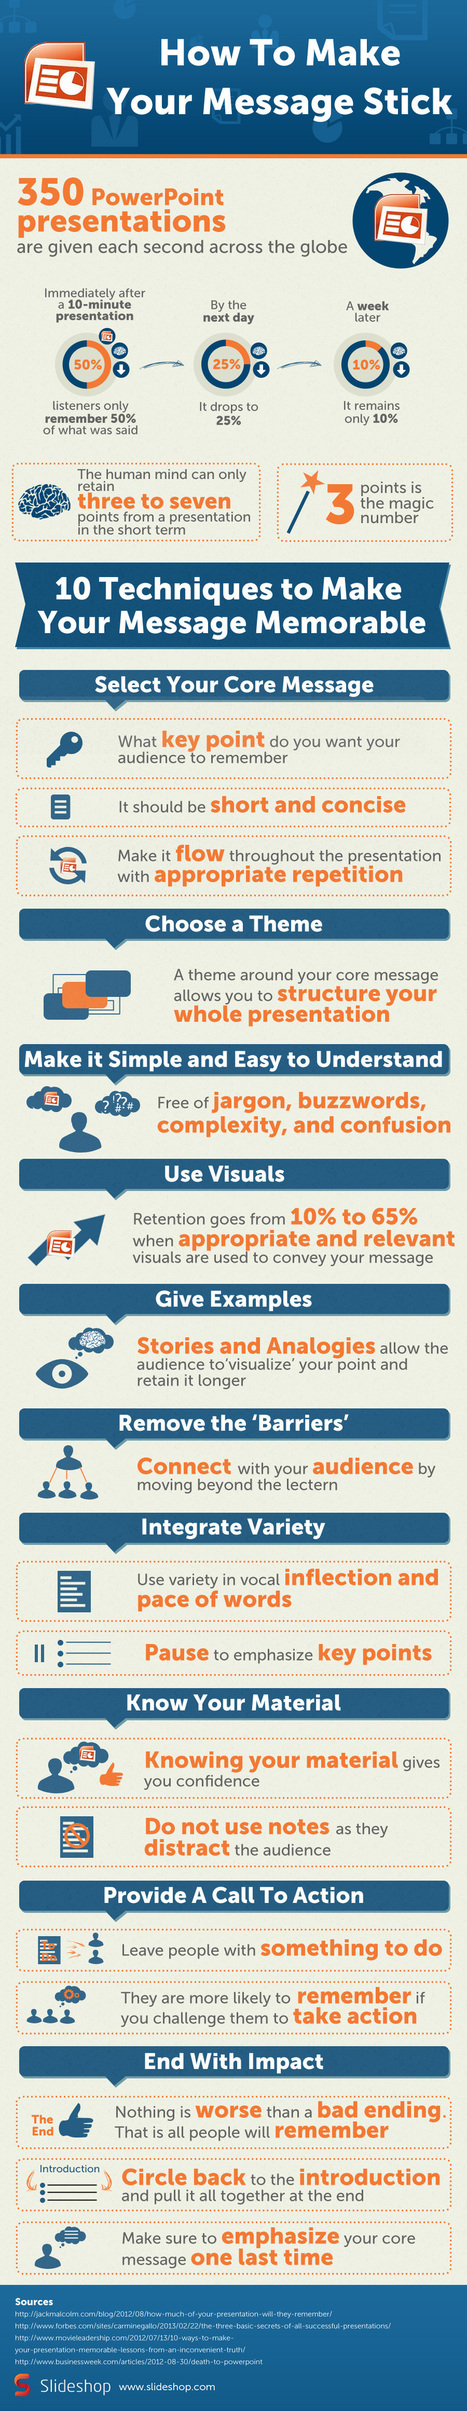 Presentations Infographic: Making Your Message Stick | Social Media | Scoop.it